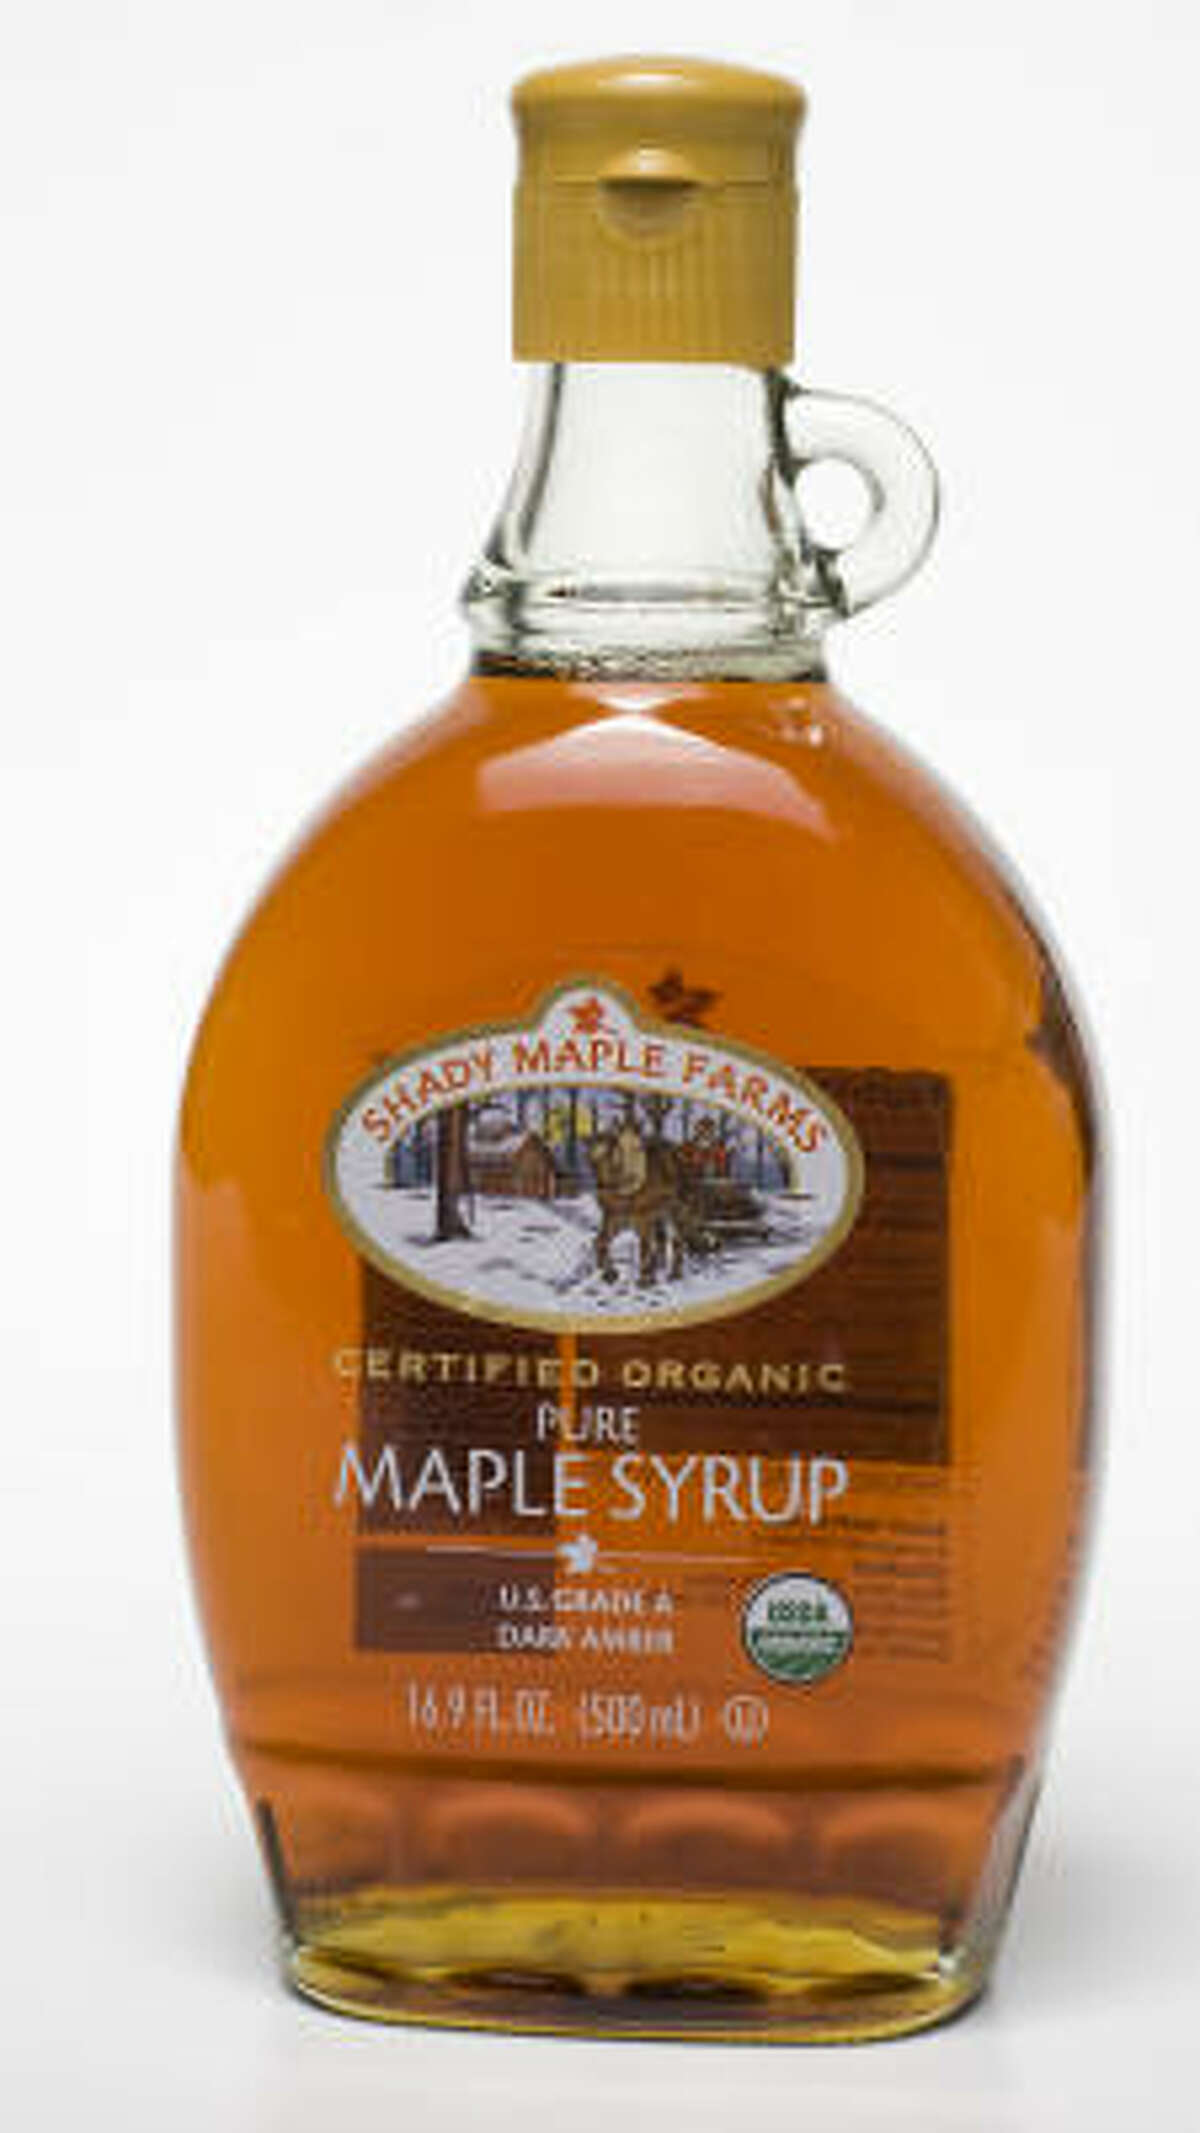 USDA-certified organic maple syrup: Shady Maple Farms maple syrup, $17.99.